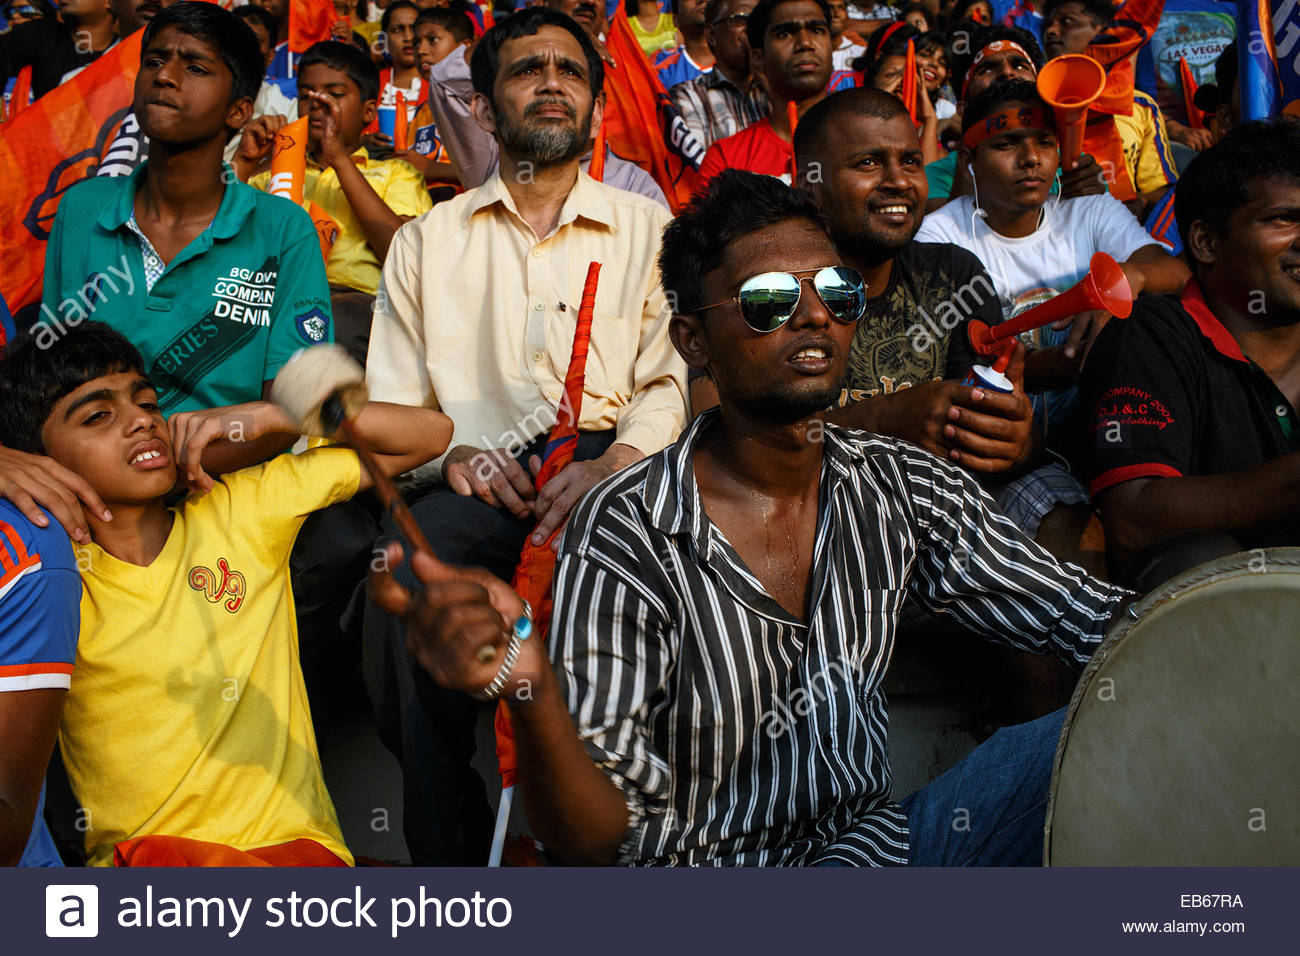 Football supporters watching Indian Super League FC Goa - Mumbai City FC match at the stadium in Margao Goa India. - Stock Image